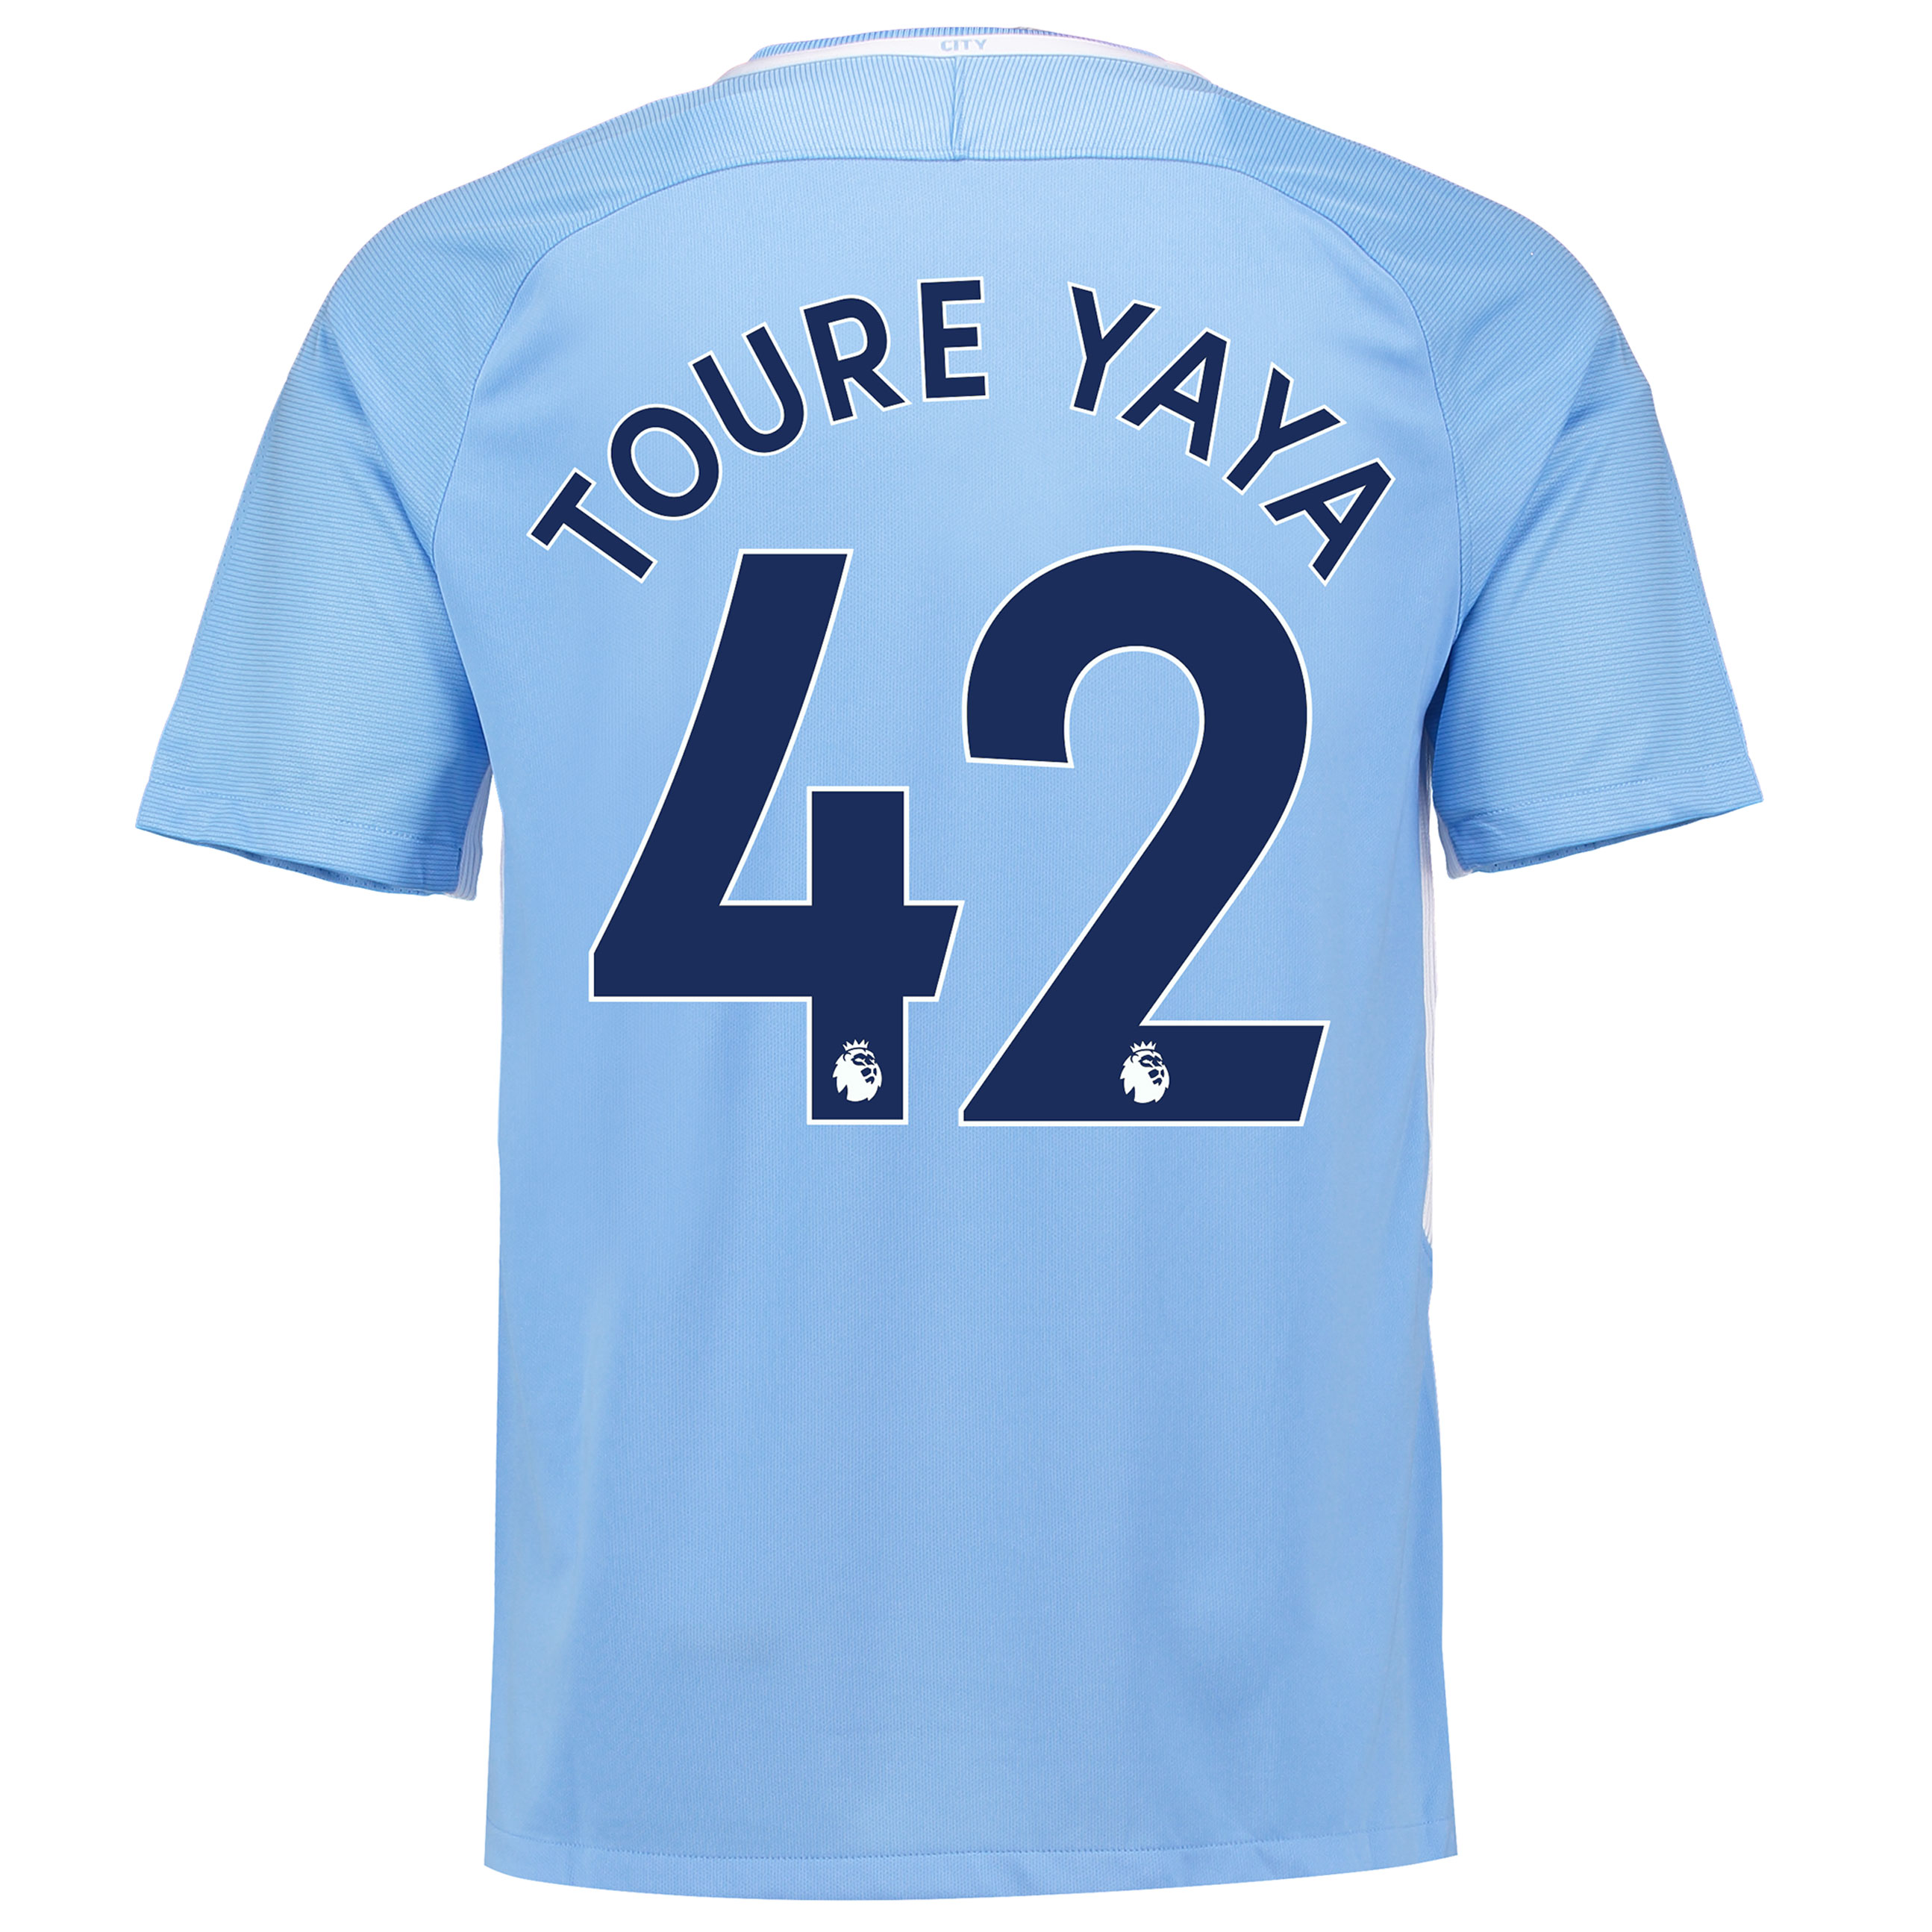 Manchester City Home Stadium Shirt 2017-18 with Toure Yaya 42 printing